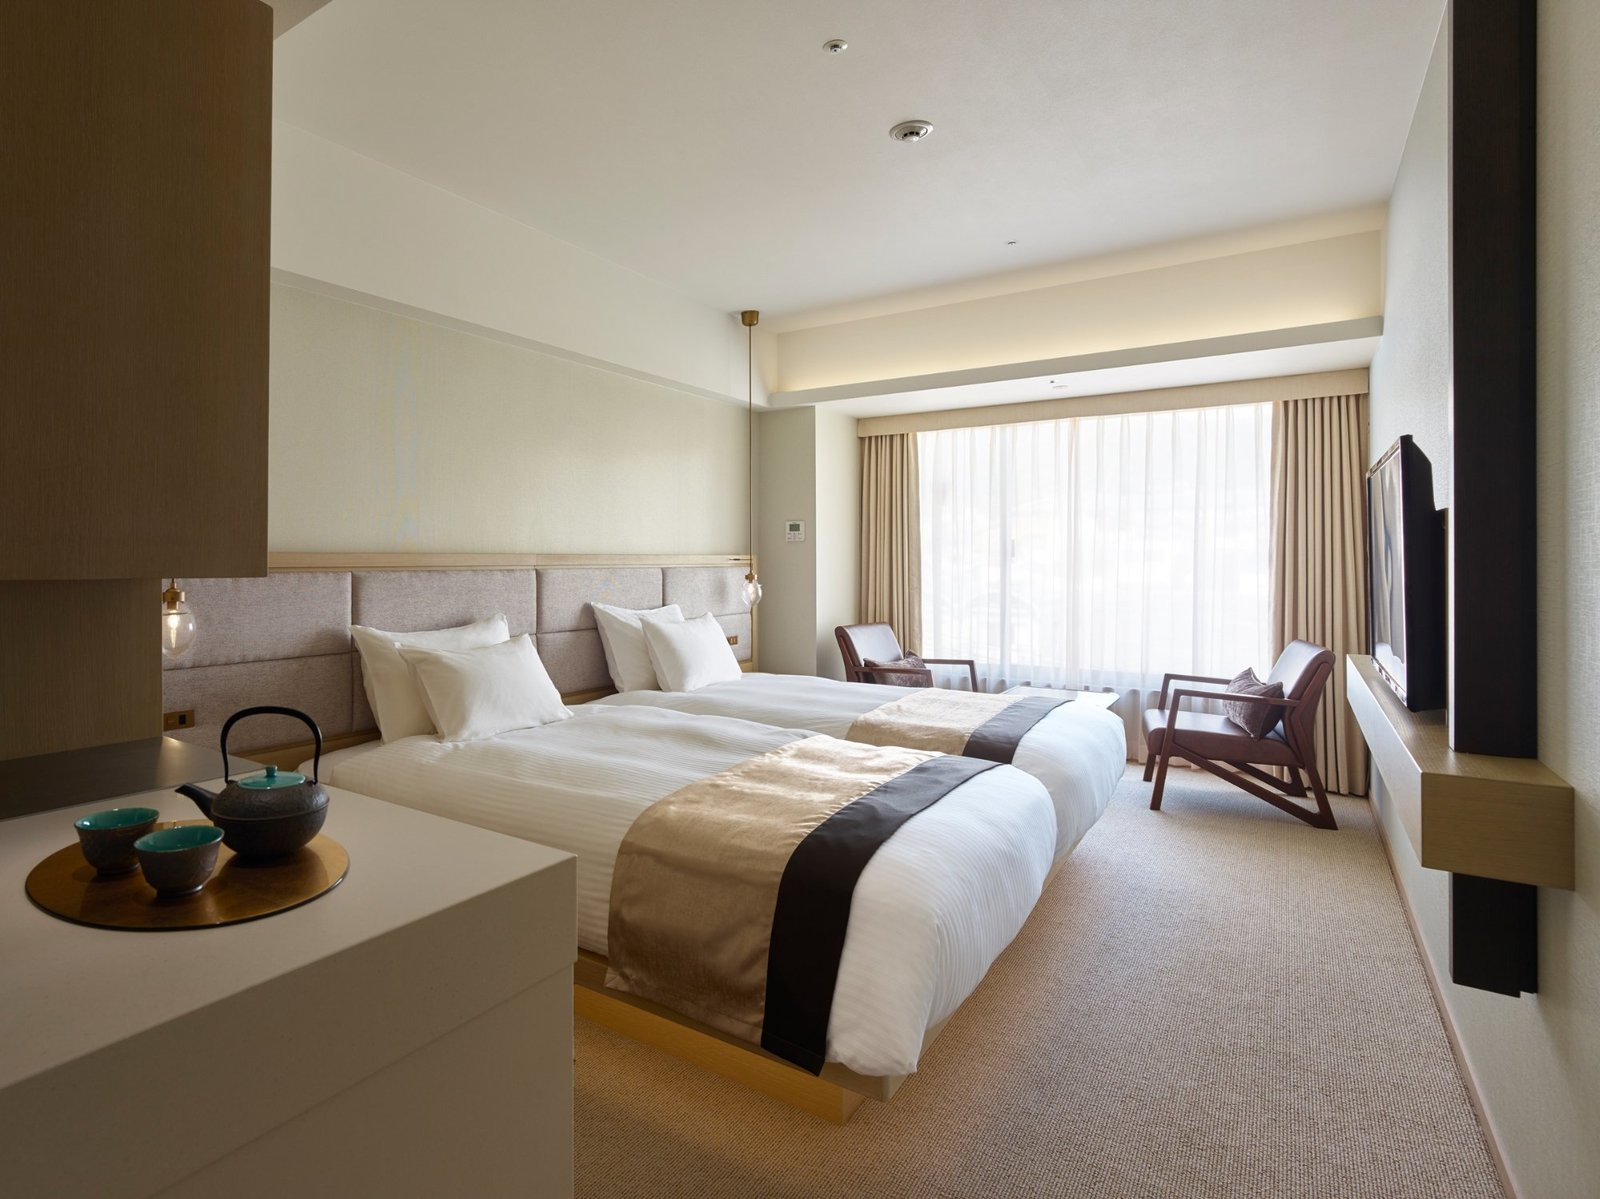 Bedroom, Pendant Lighting, Carpet Floor, Bed, and Chair  Hotel The Celestine Kyoto Gion